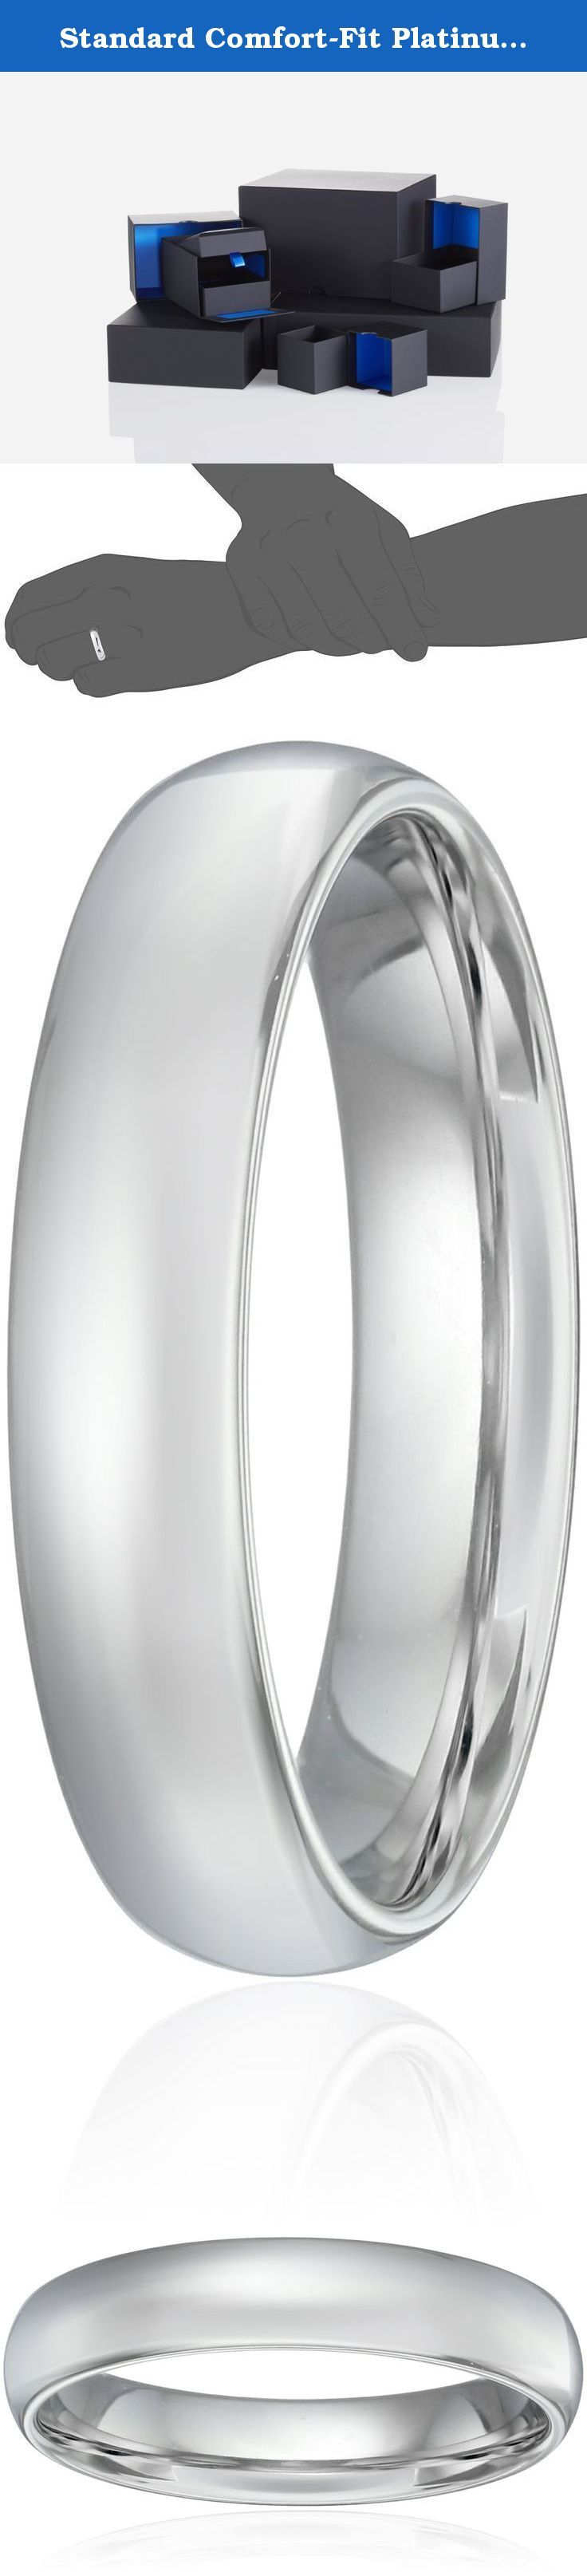 Standard Comfort-Fit Platinum Band, 5mm, Size 10.5. Choose a solid, classic look with this 5mm comfort fit men's wedding band, crafted in strong and radiant 950 platinum. This handsome band has a slightly rounded shape and a bright polished finish. The comfort fit design features a rounded polished interior that allows the ring to slide on easily and rest comfortably on the finger. Platinum is a beautiful and popular precious metal, valued for its extreme rarity and natural silver-white...